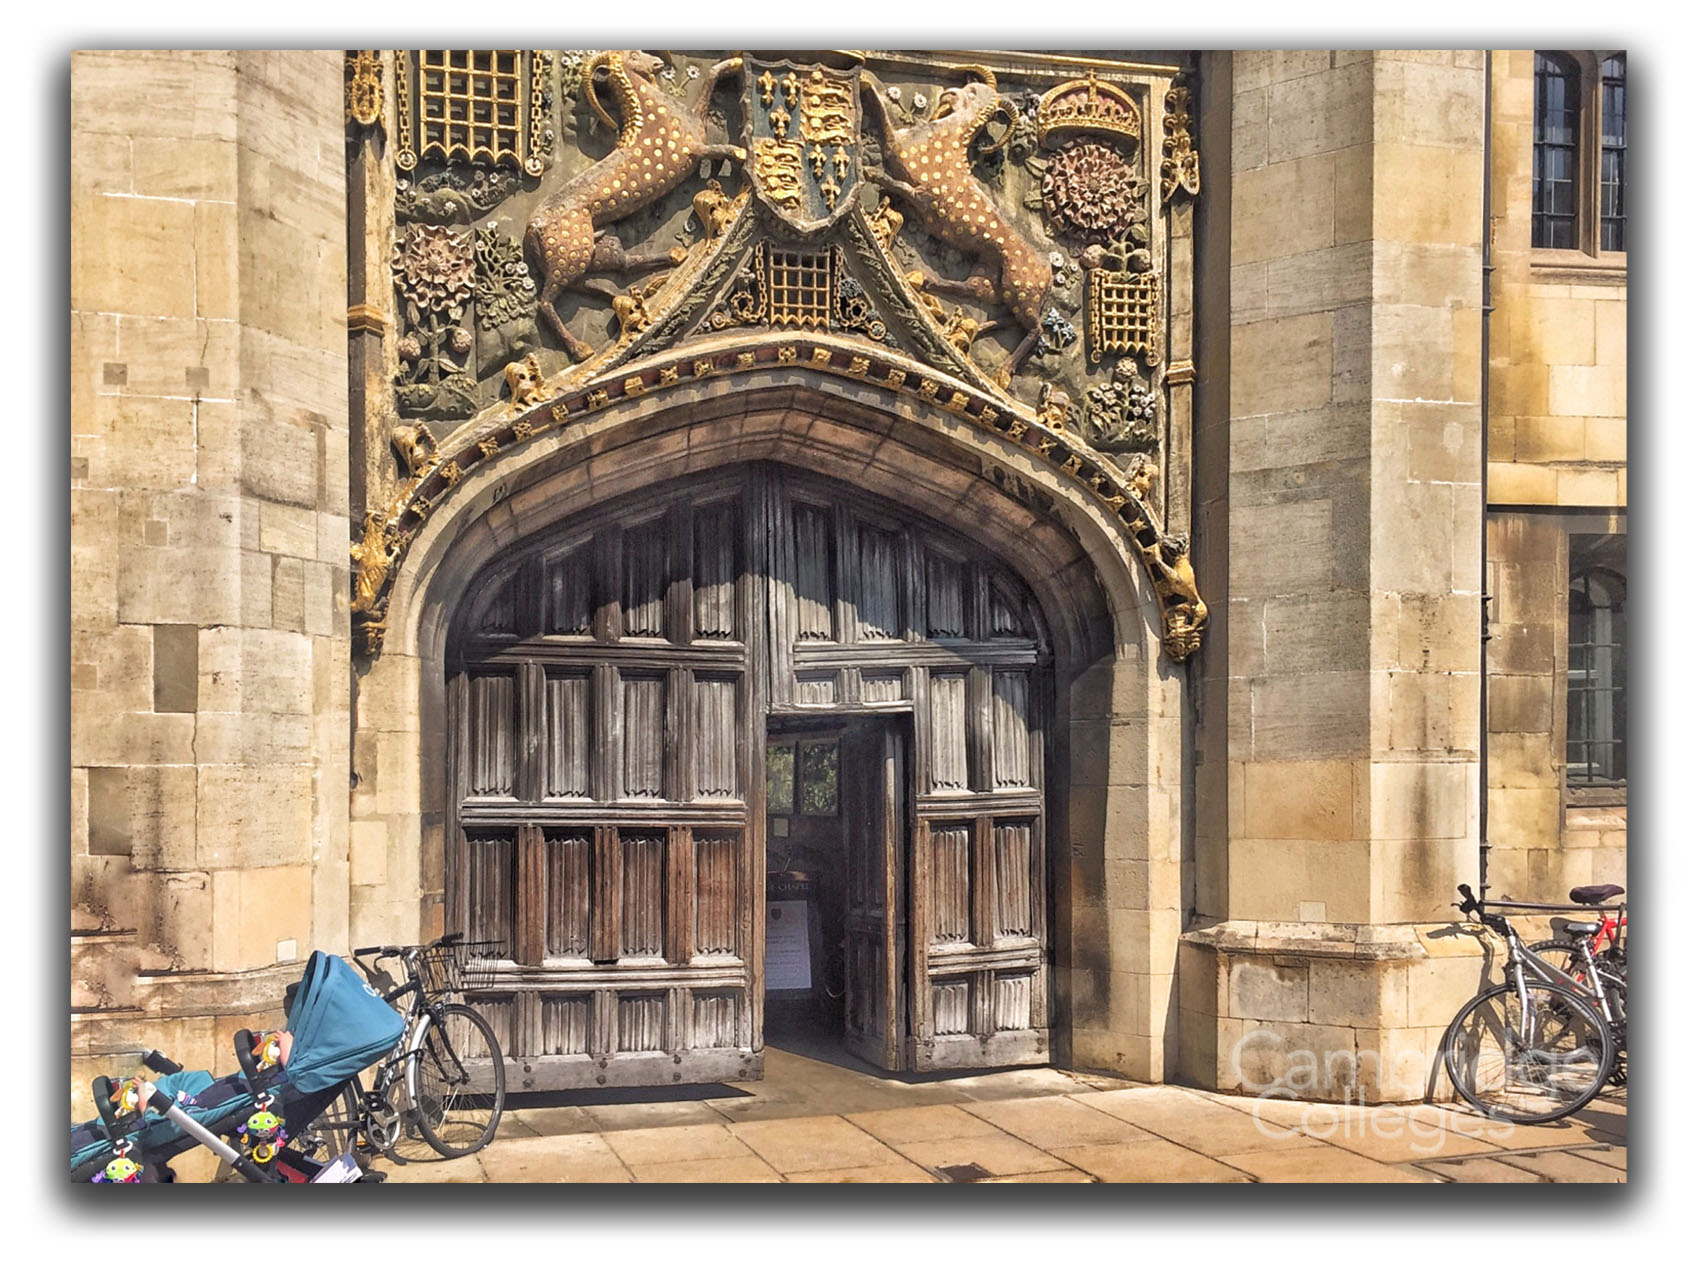 The Great Gate at Christ's College, Cambridge